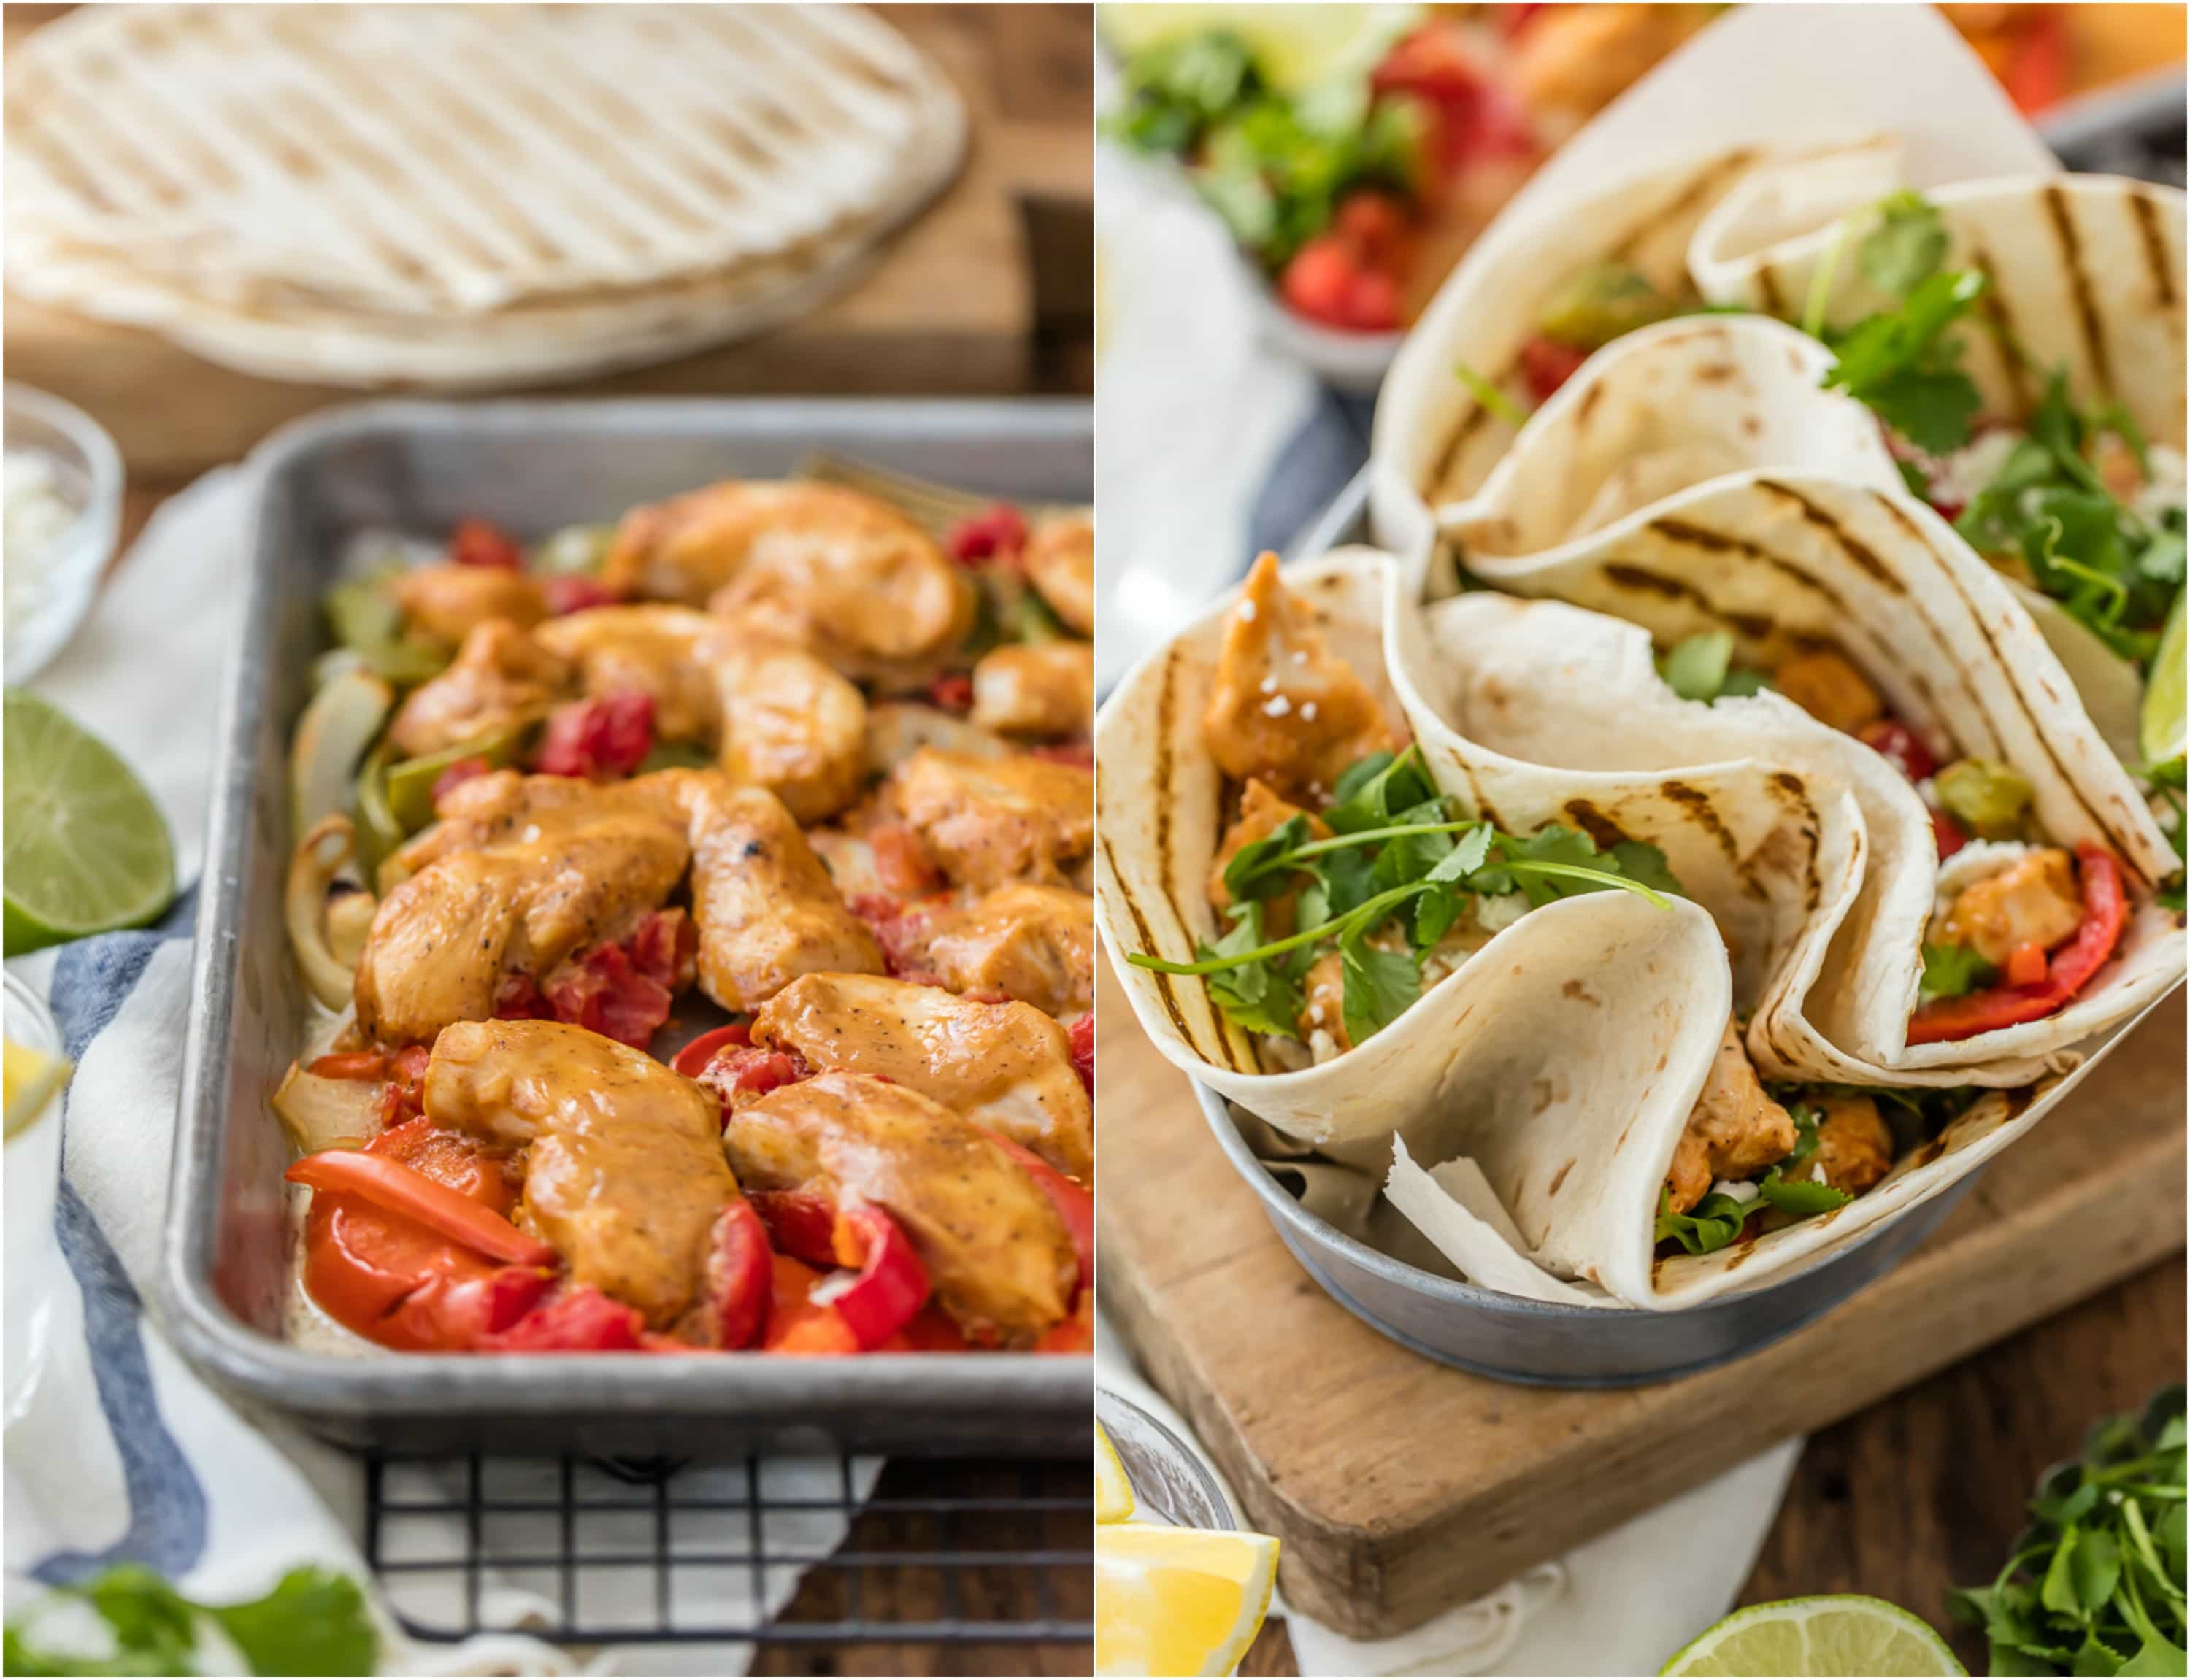 Skinny Baked Sheet Pan Chicken Fajitas for Two | The ...